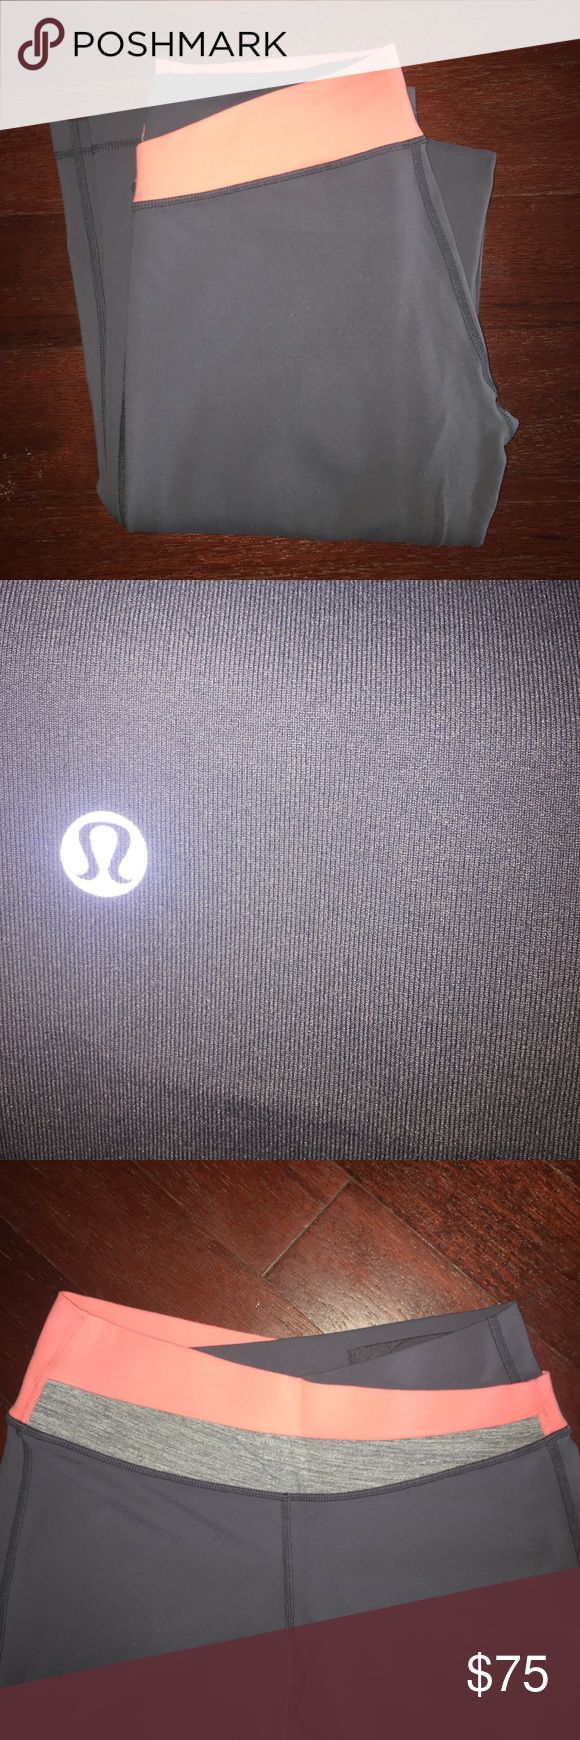 Lululemon bootcut leggings Great condition!! Rarely worn and have a high waistband. Grey with pink and grey accents. No sign of wear! lululemon athletica Pants Leggings